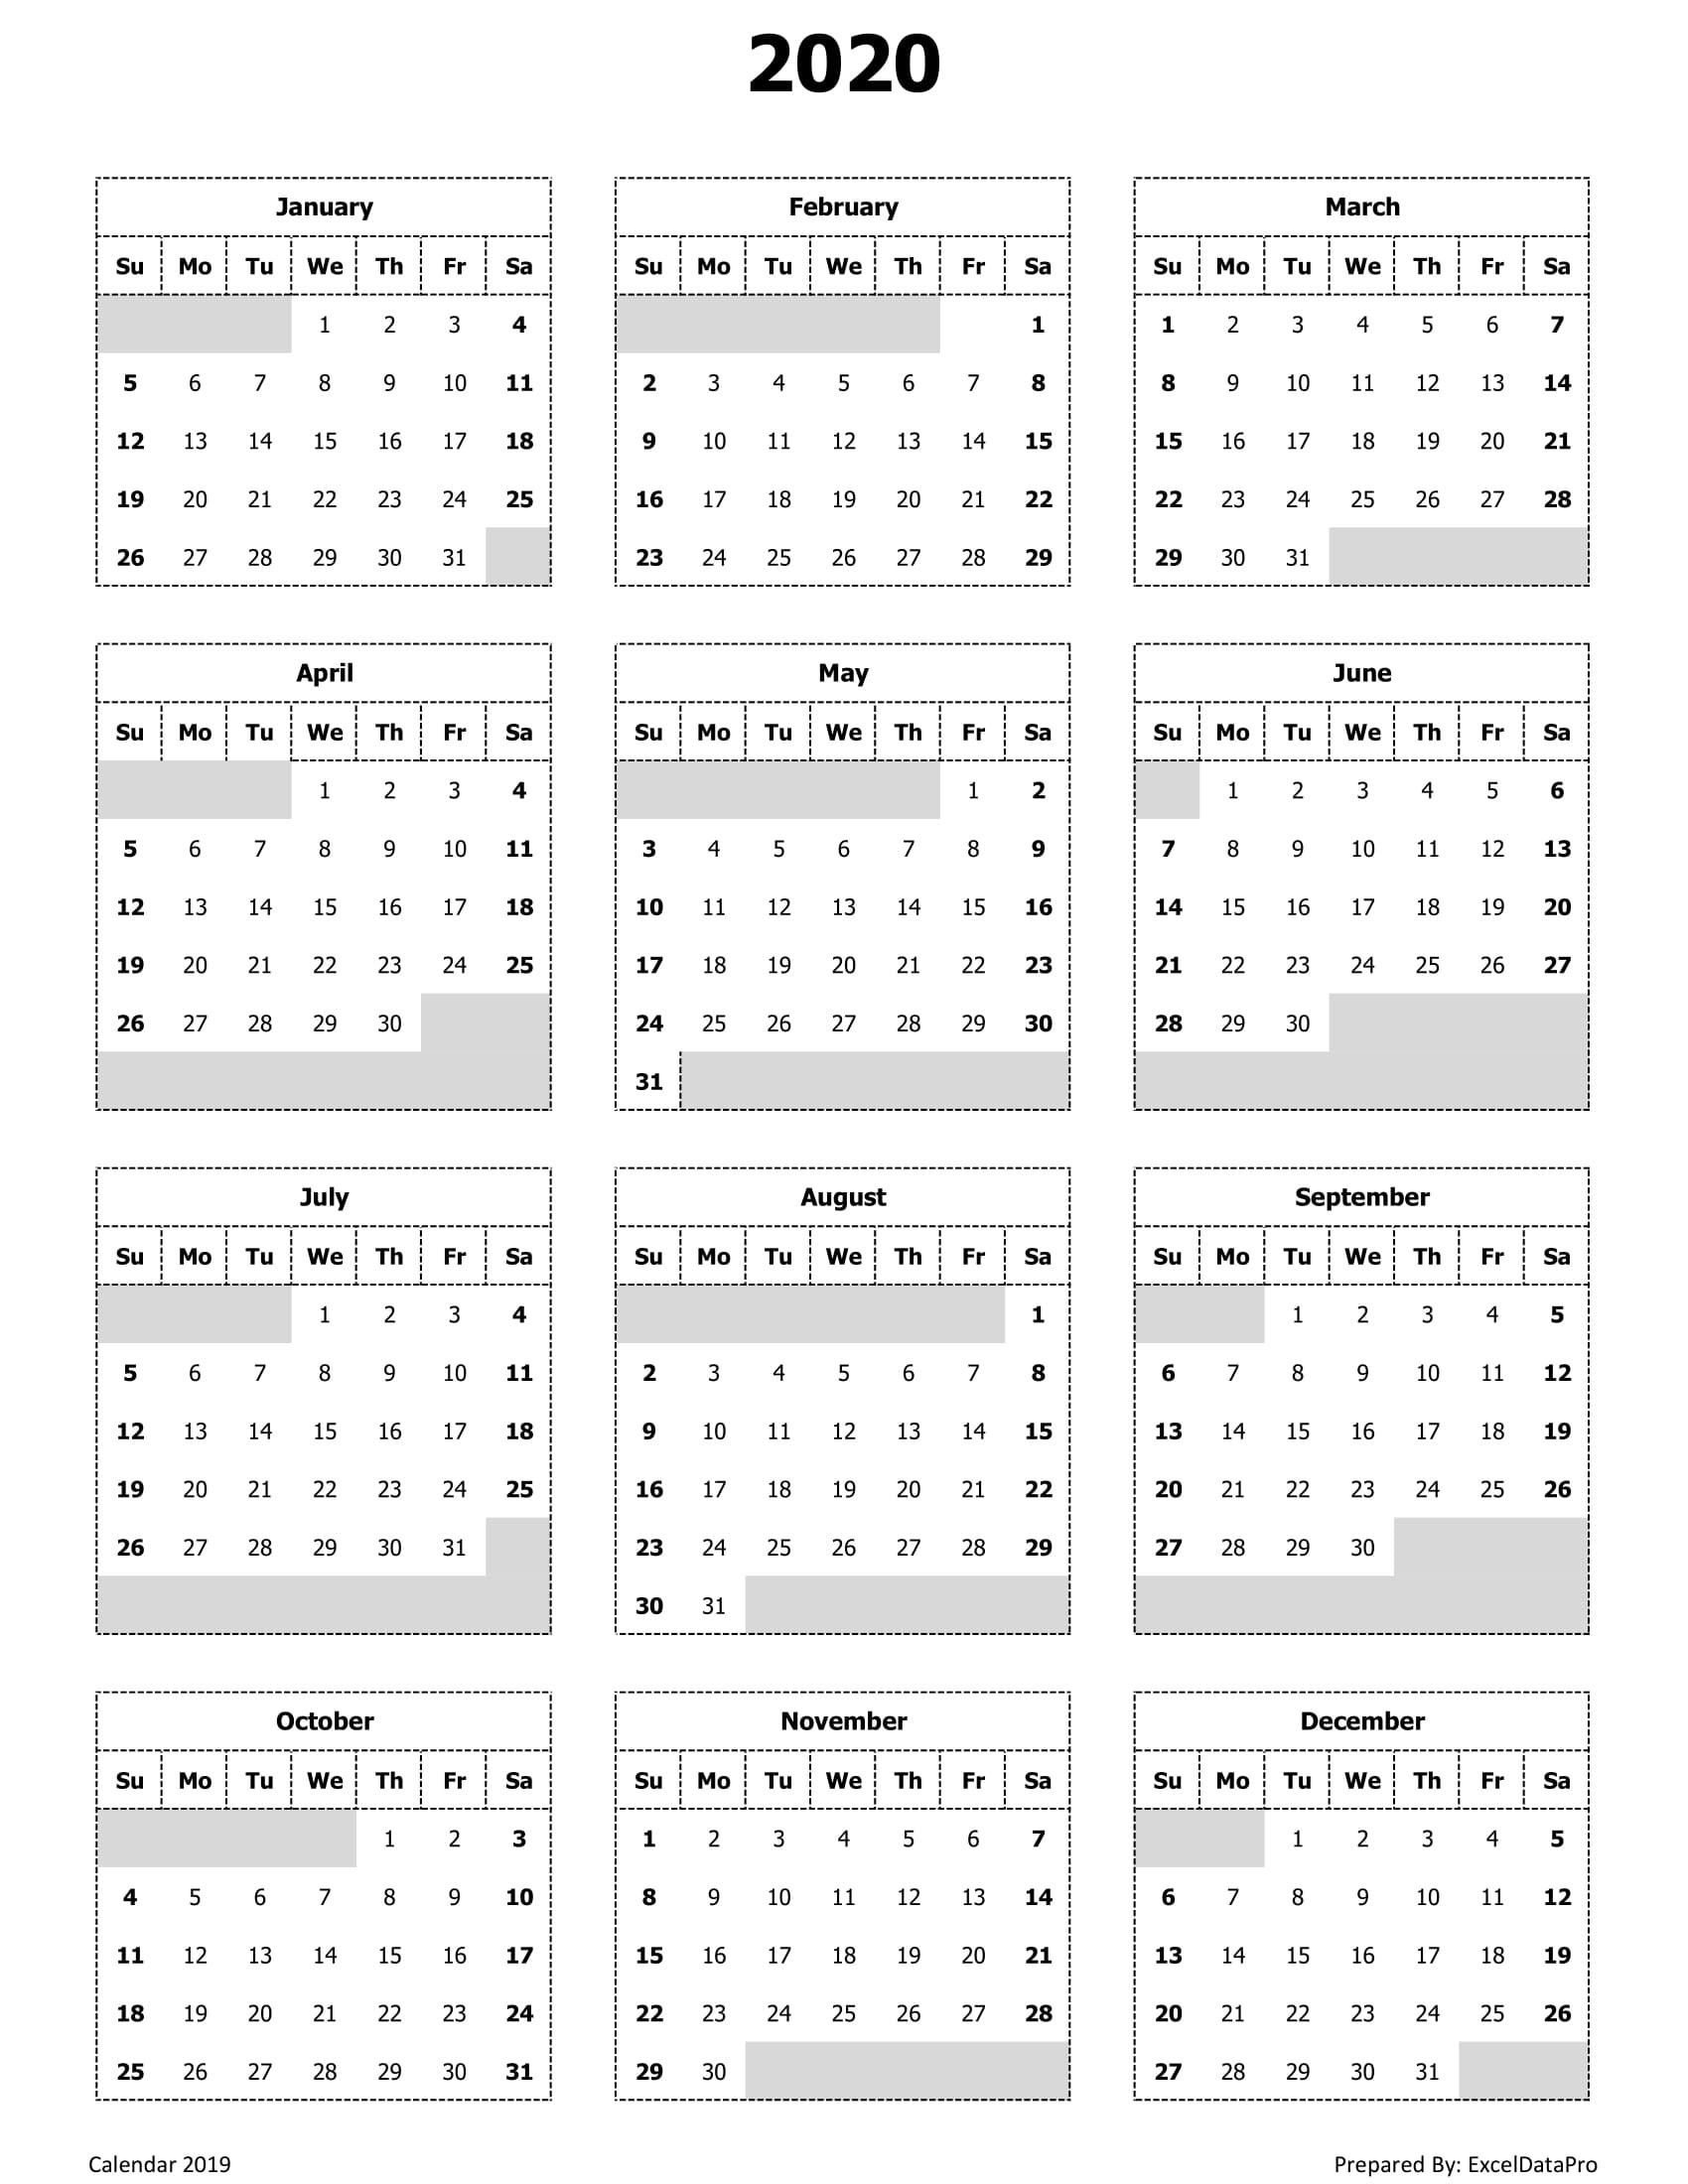 2020 Calendar Excel Templates, Printable Pdfs & Images  Full Size Calendar 2020